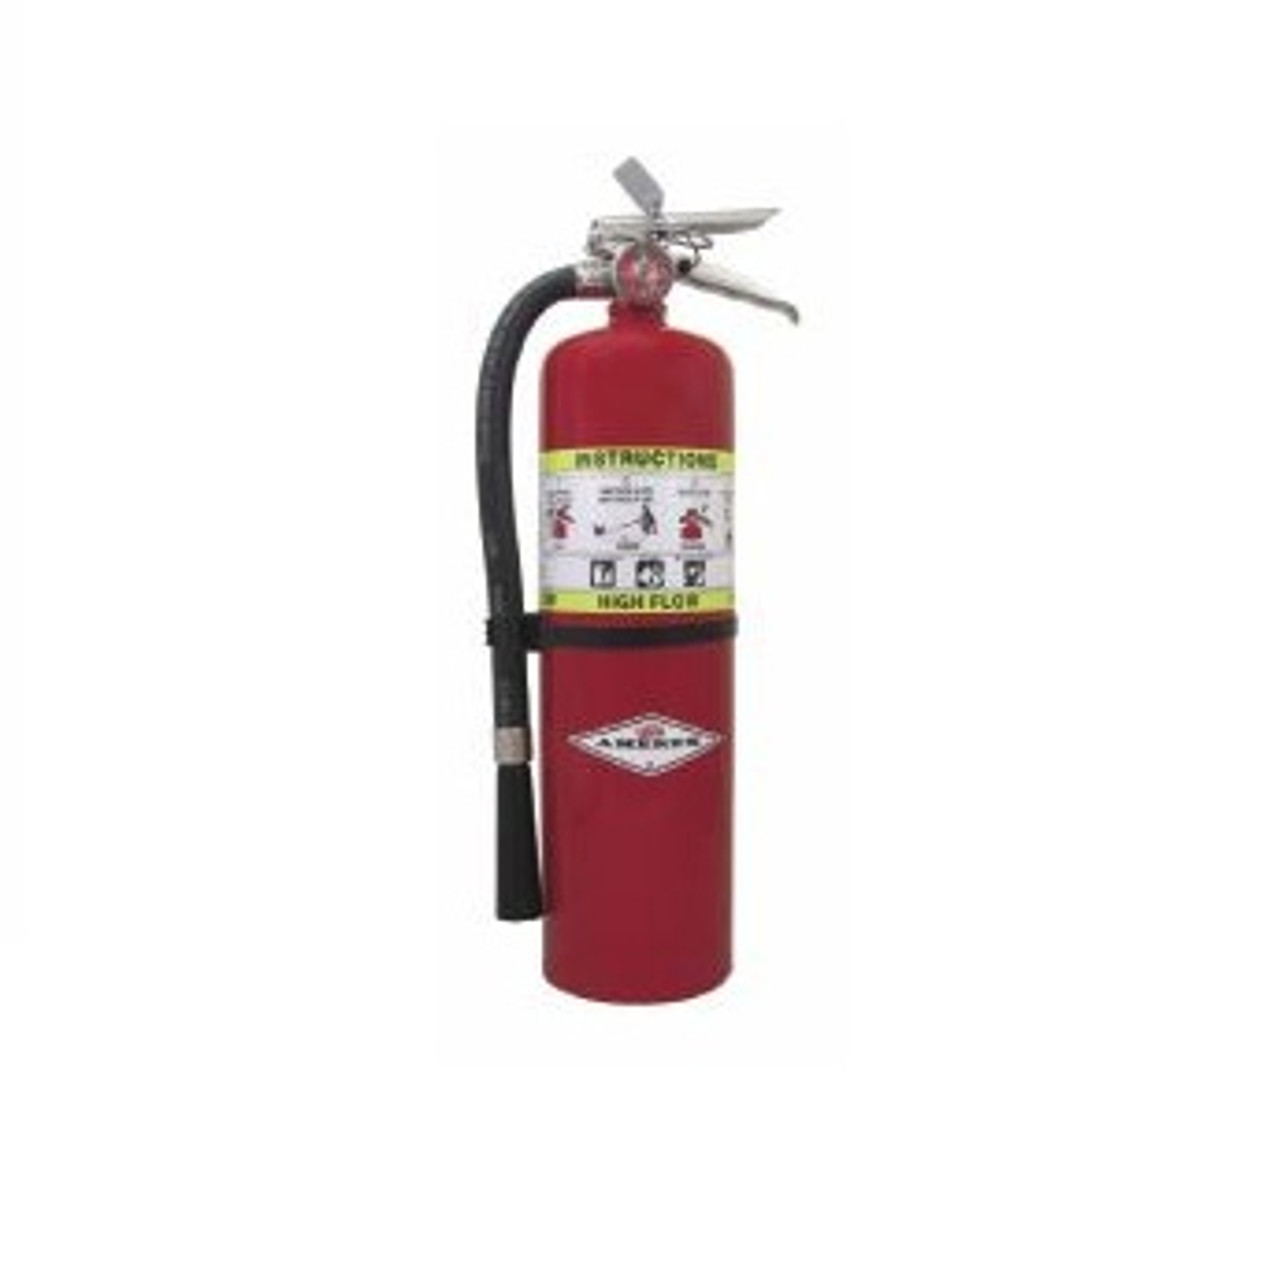 Amerex 720 - 10 lb ABC High Flow Dry Chemical Fire Extinguisher